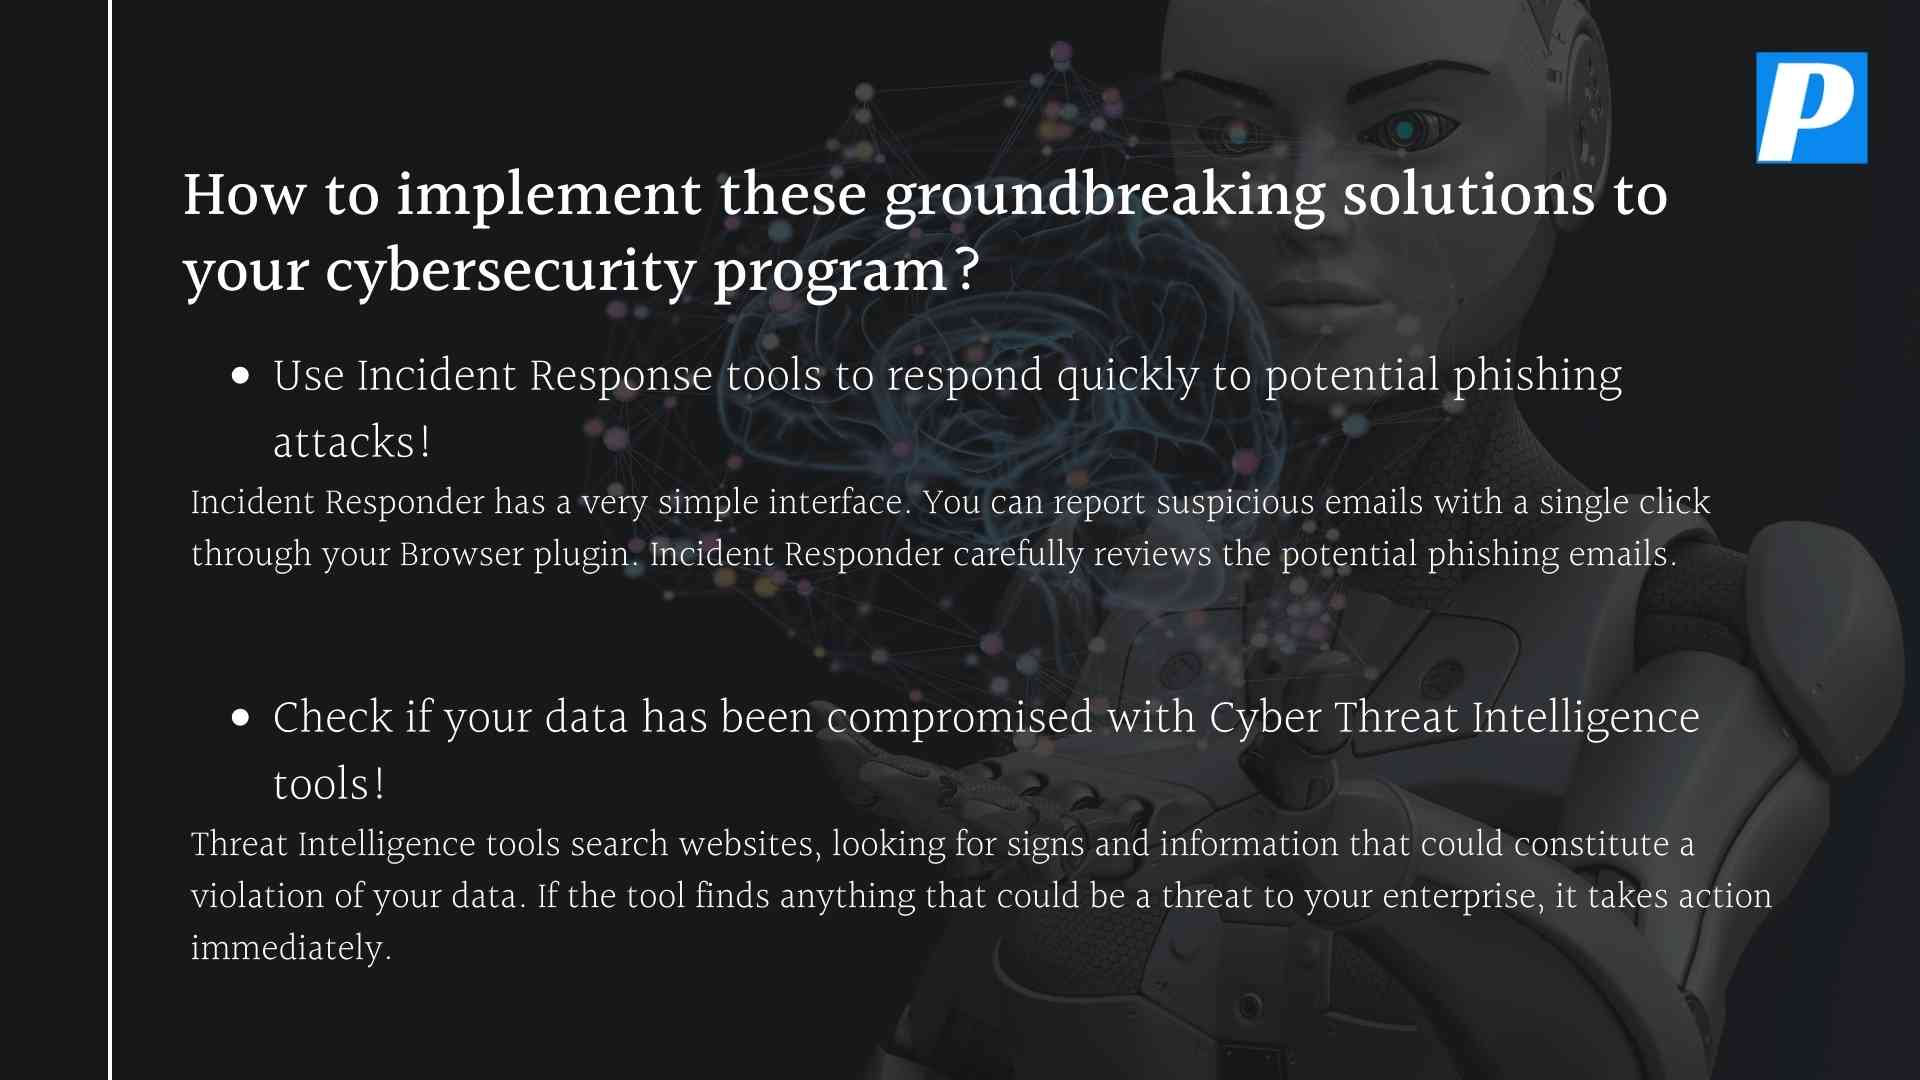 Artificial Intelligence Technology Revolutionized Cybersecurity